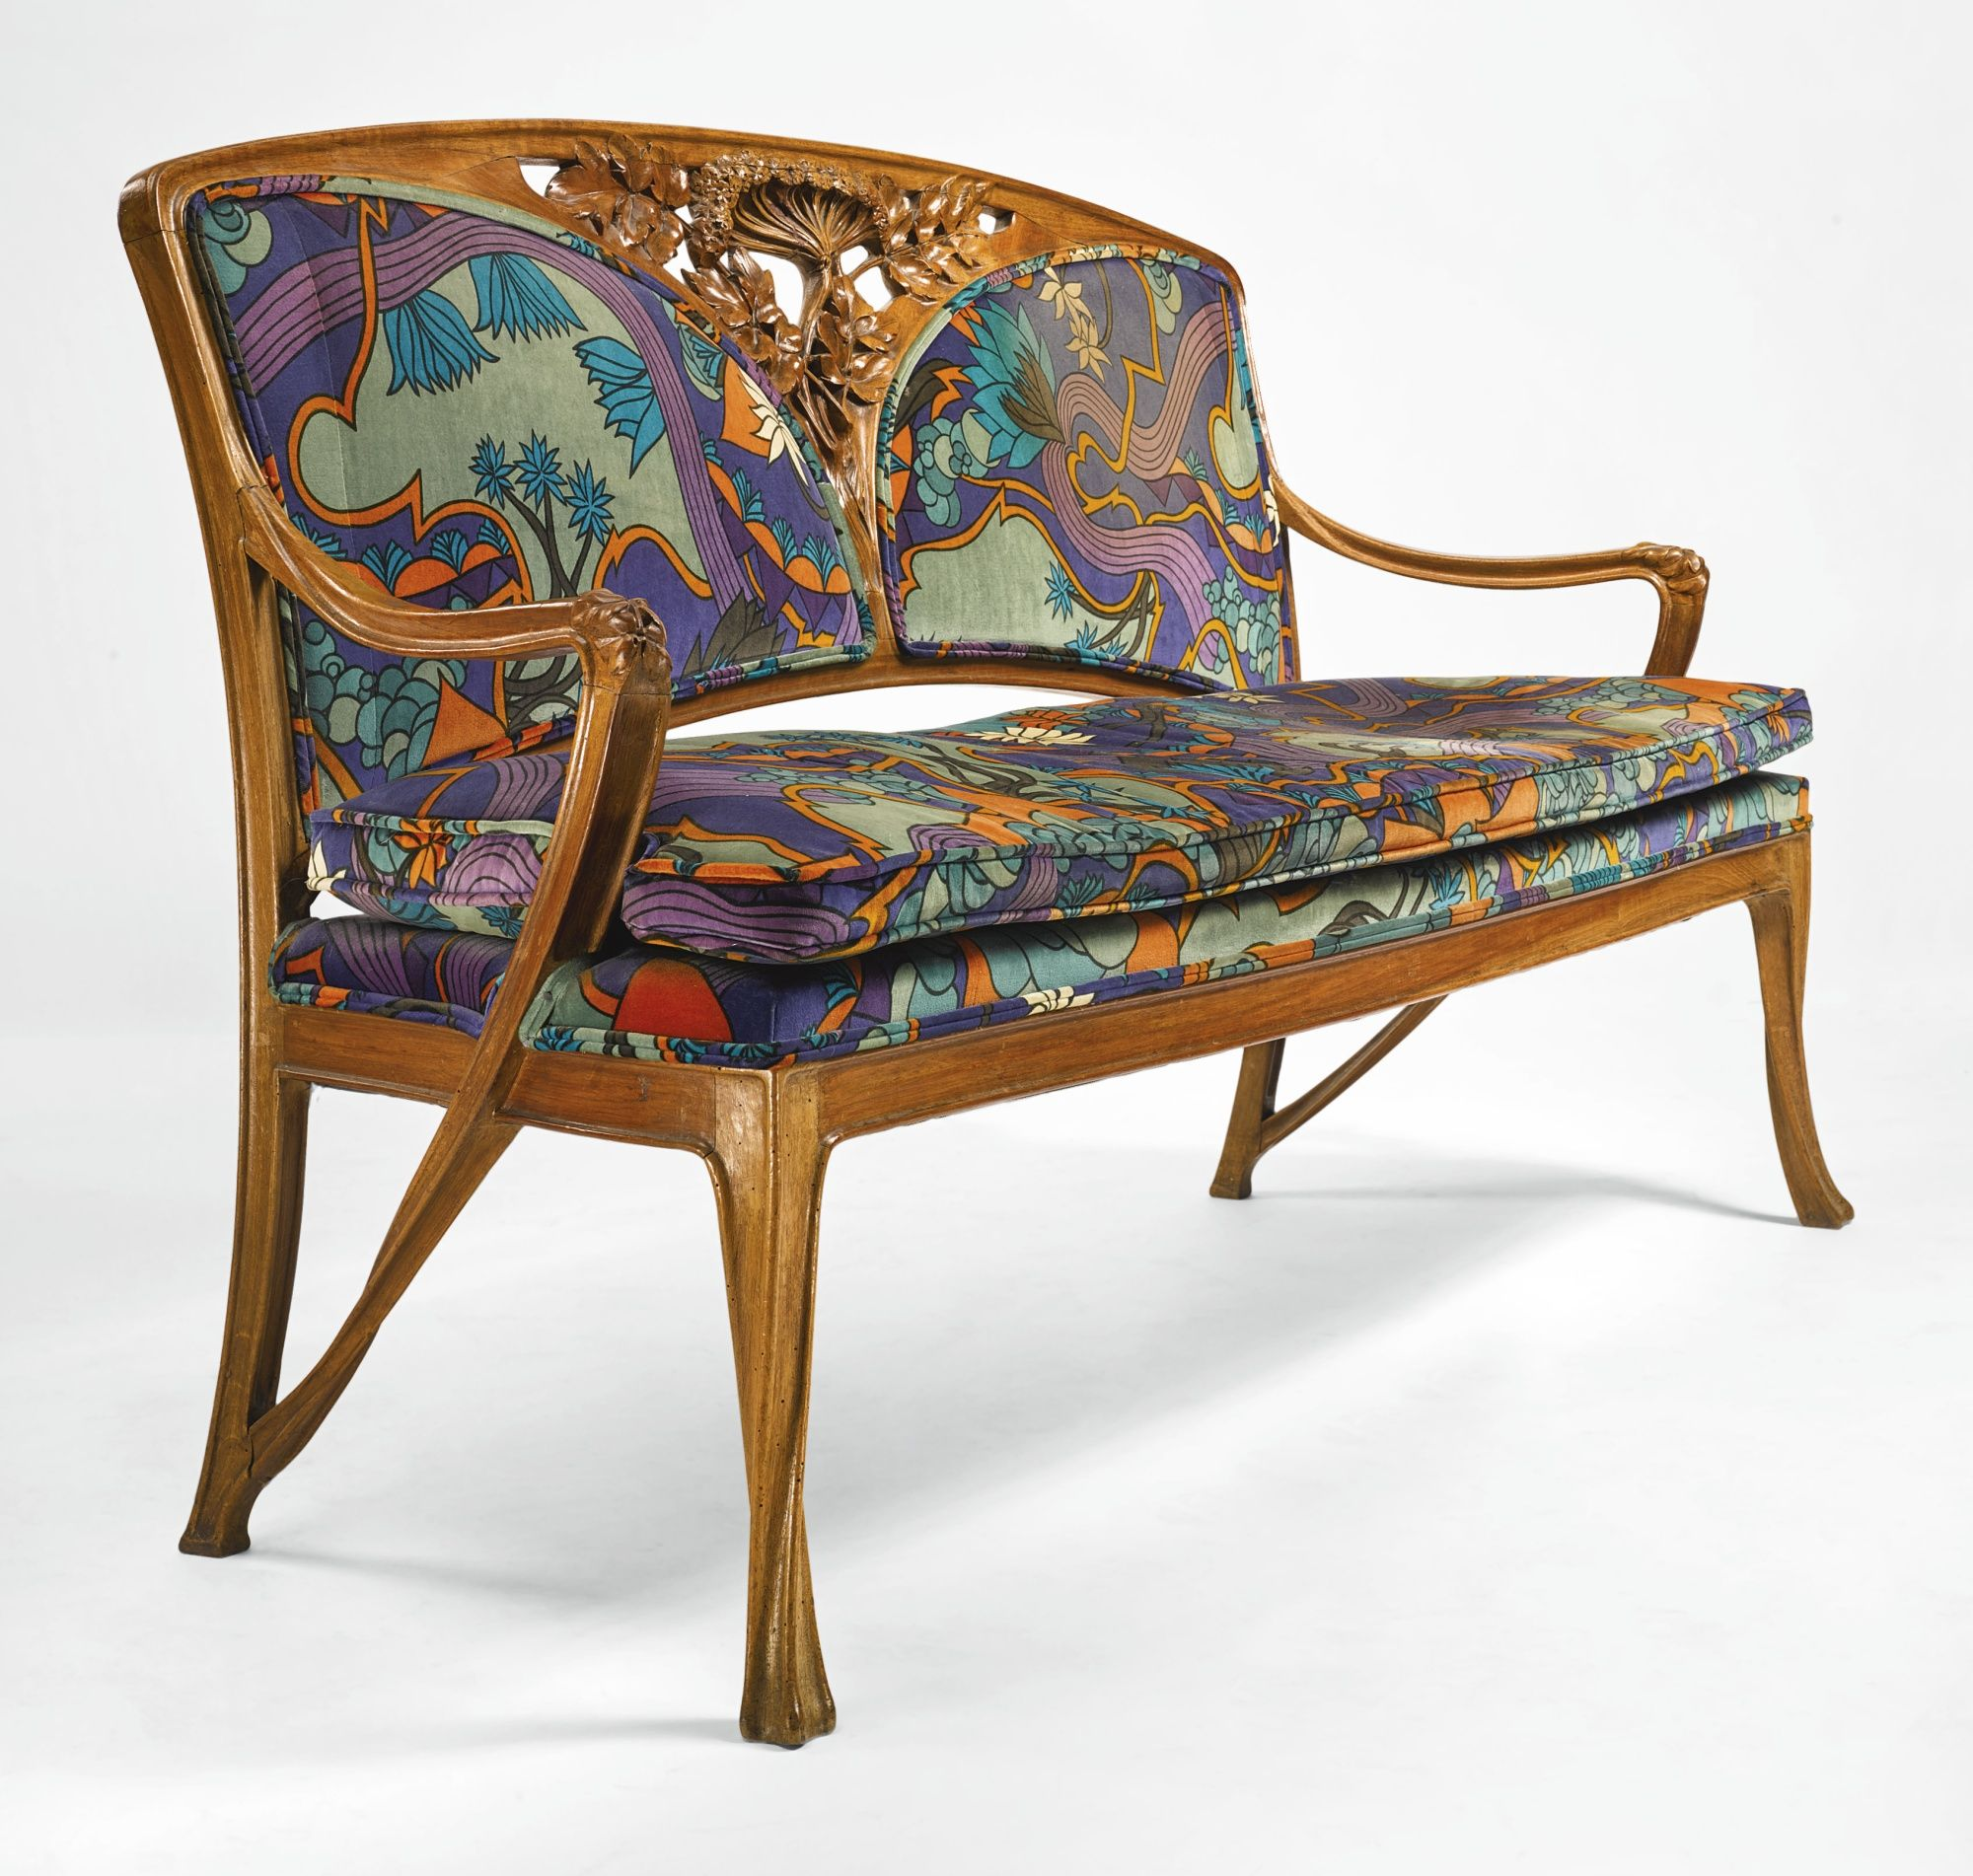 Louis Majorelle Settee walnut and fabric upholstery 38 1 4 x 63 1 2